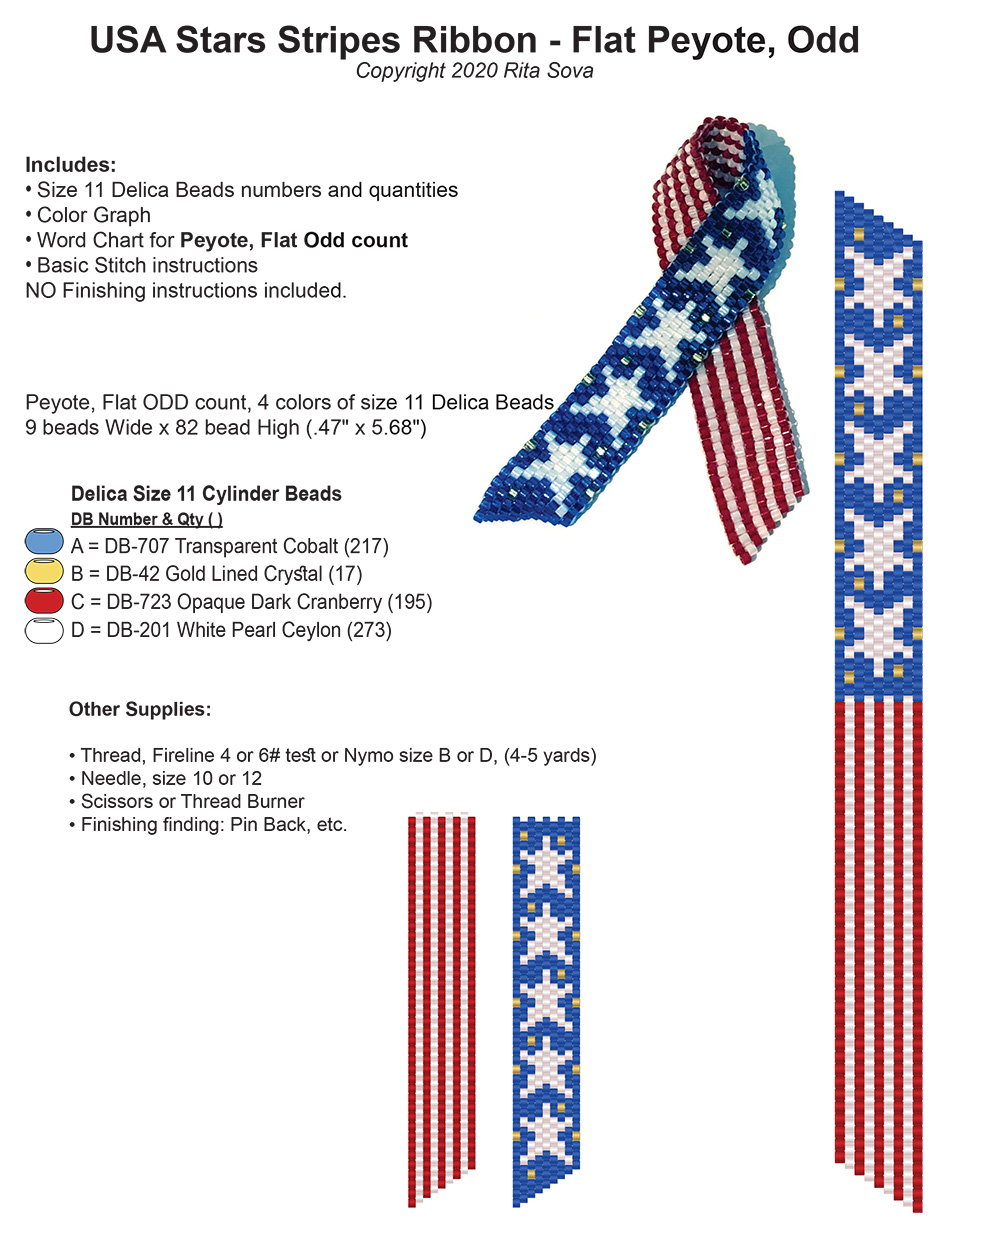 USA Stars Stripes Ribbon